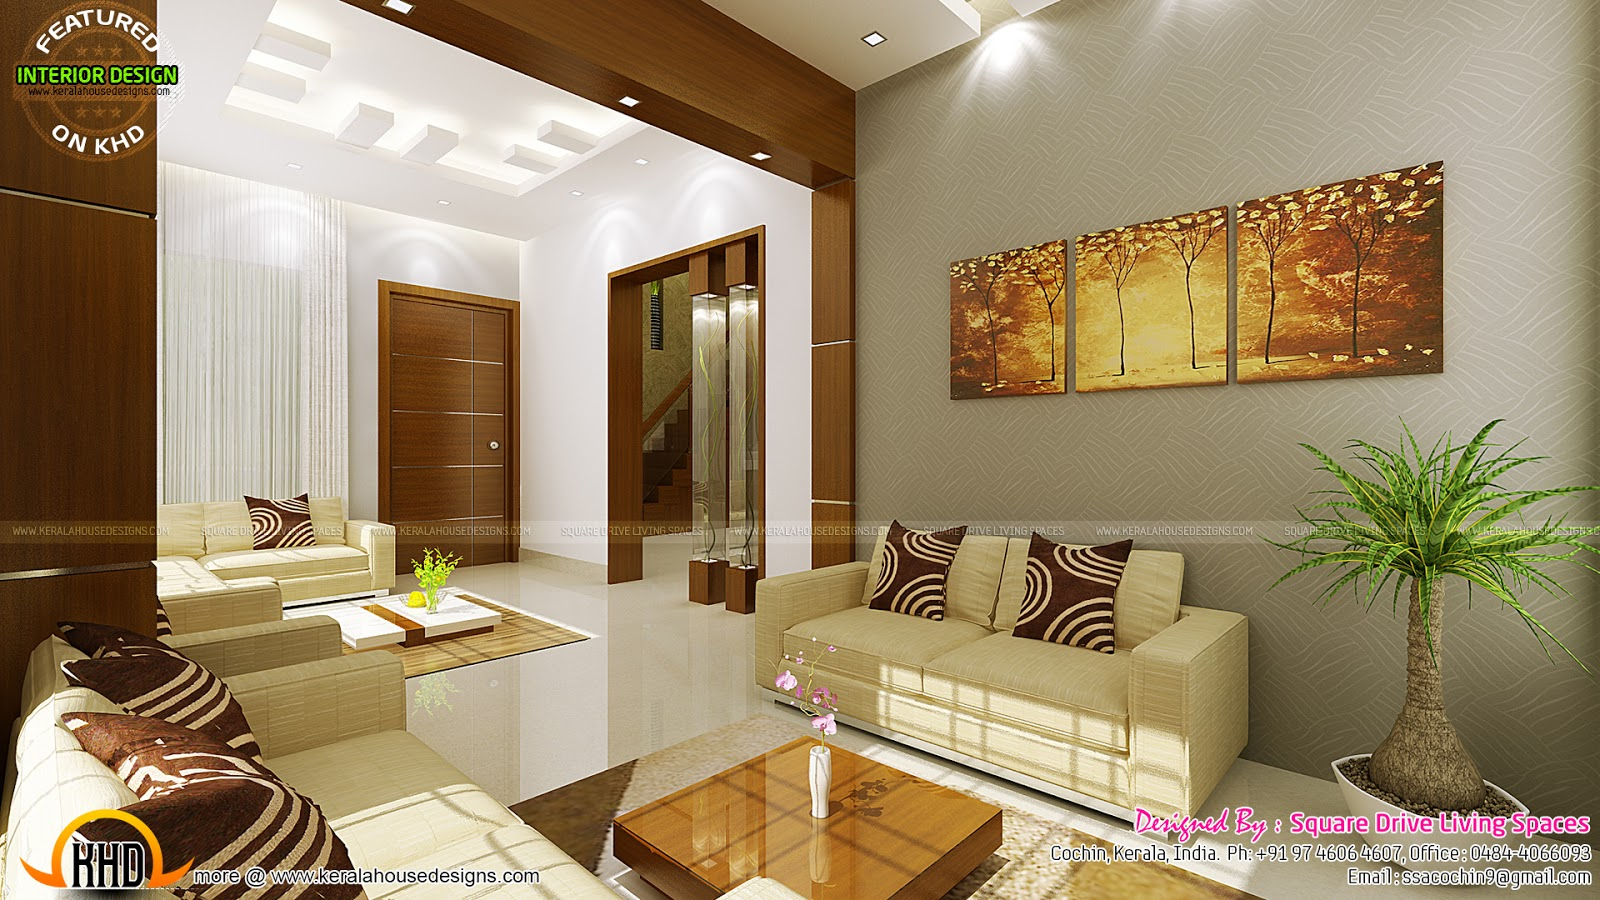 Contemporary kitchen dining and living room kerala home for Kerala house living room interior design